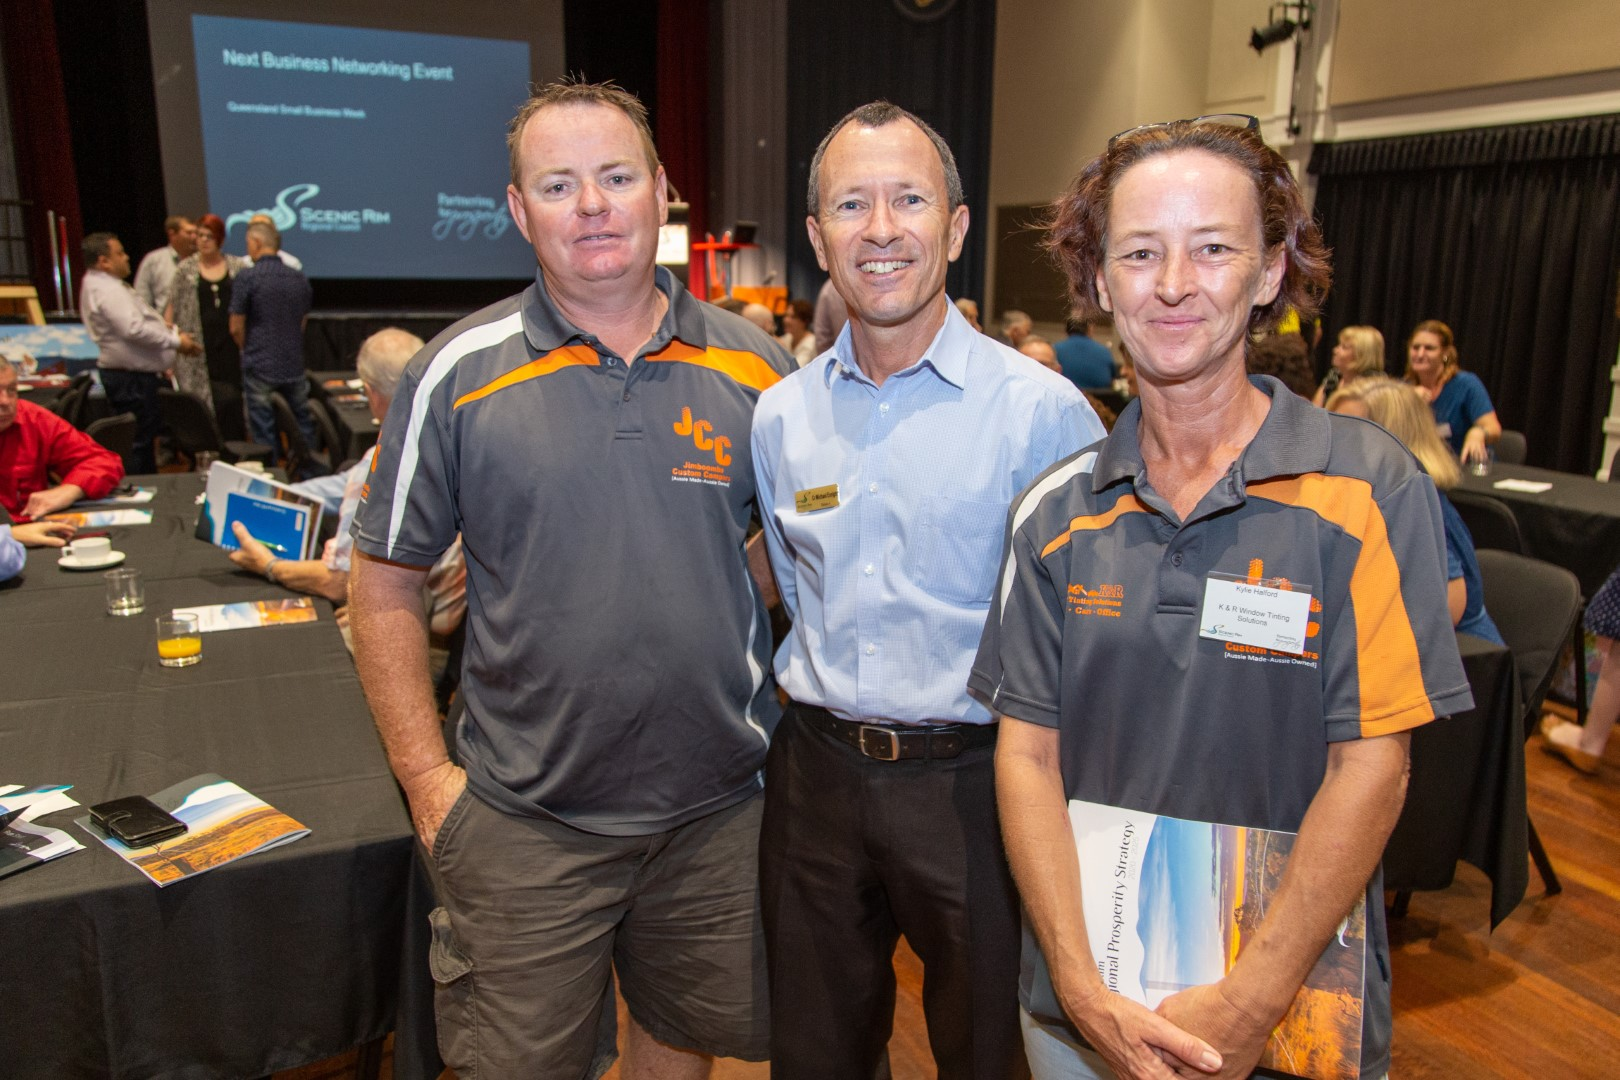 Robert Moore, Jimboomba Custom Campers, Cr Michael Enright and Kylie Halford, K & R Window Tinting Solutions at the February business breakfast.